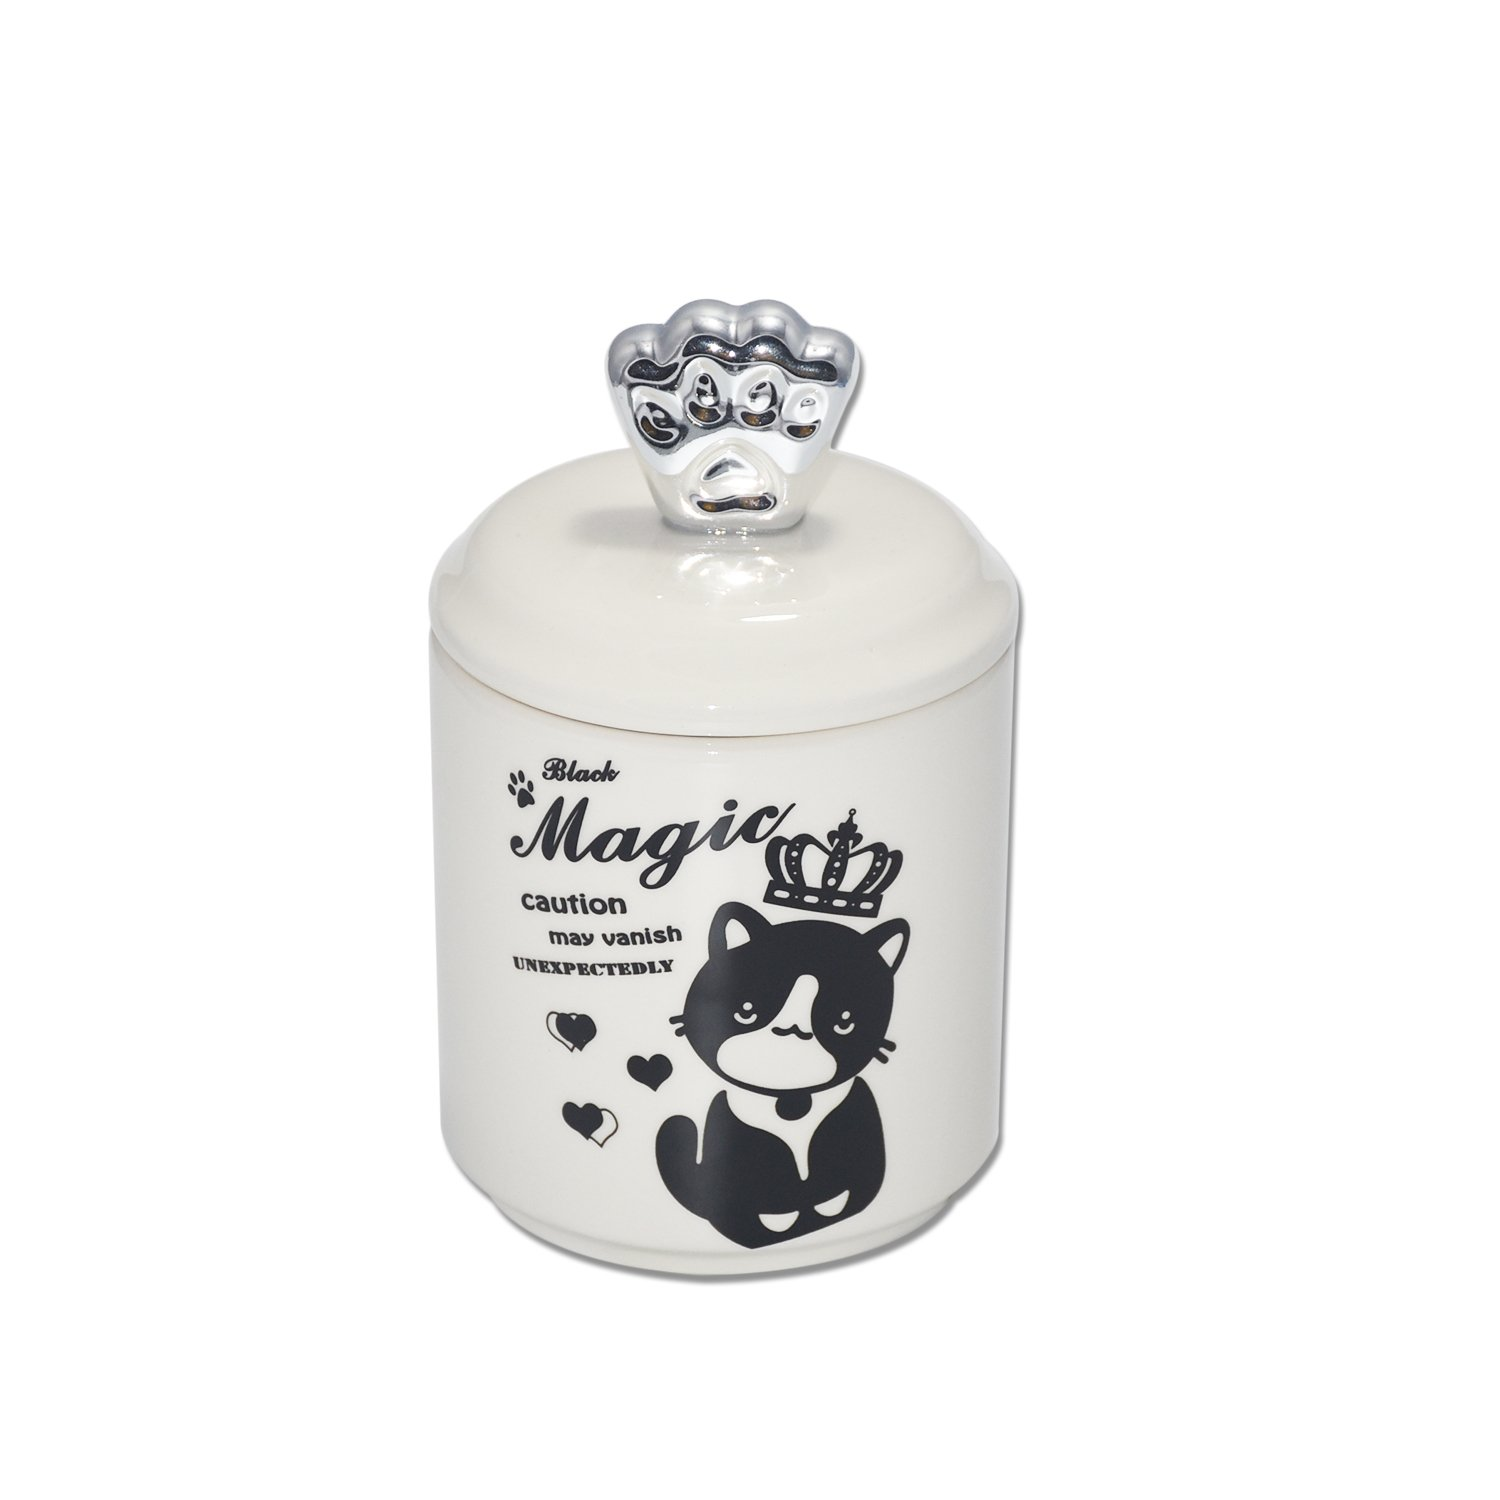 wdfpets Ceramic Pet Cat Treat Jar with Silver Paw Cover(NO AIR Tight), Cat Food Jar with Magic Kitten Decal,17.08 oz Pet Storage Jars,4 x 4 x 6.3 inches(White)